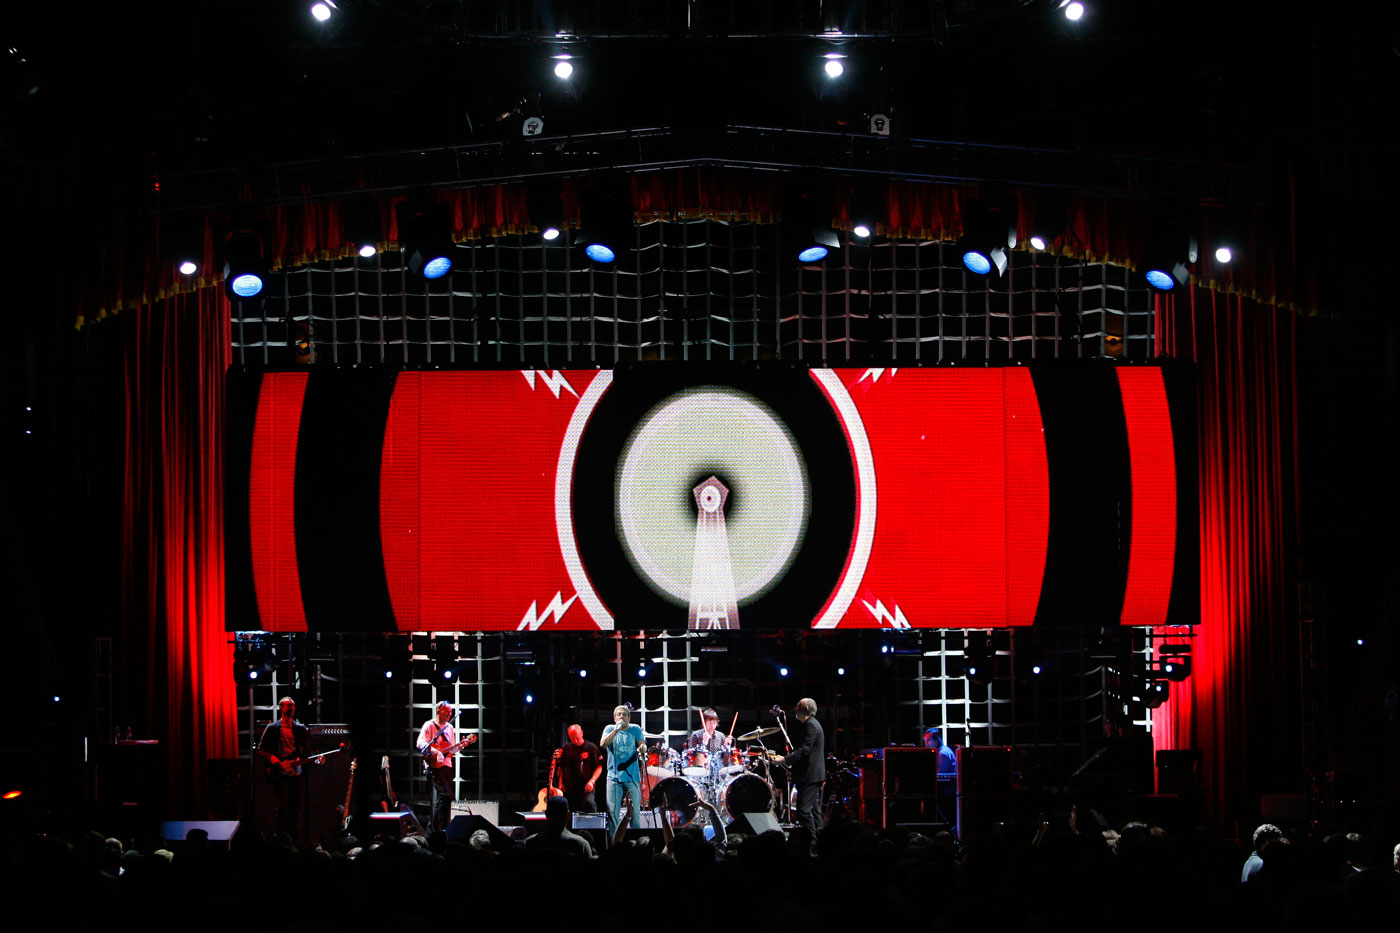 THE WHO IN THE NOUGHTIES - The Who